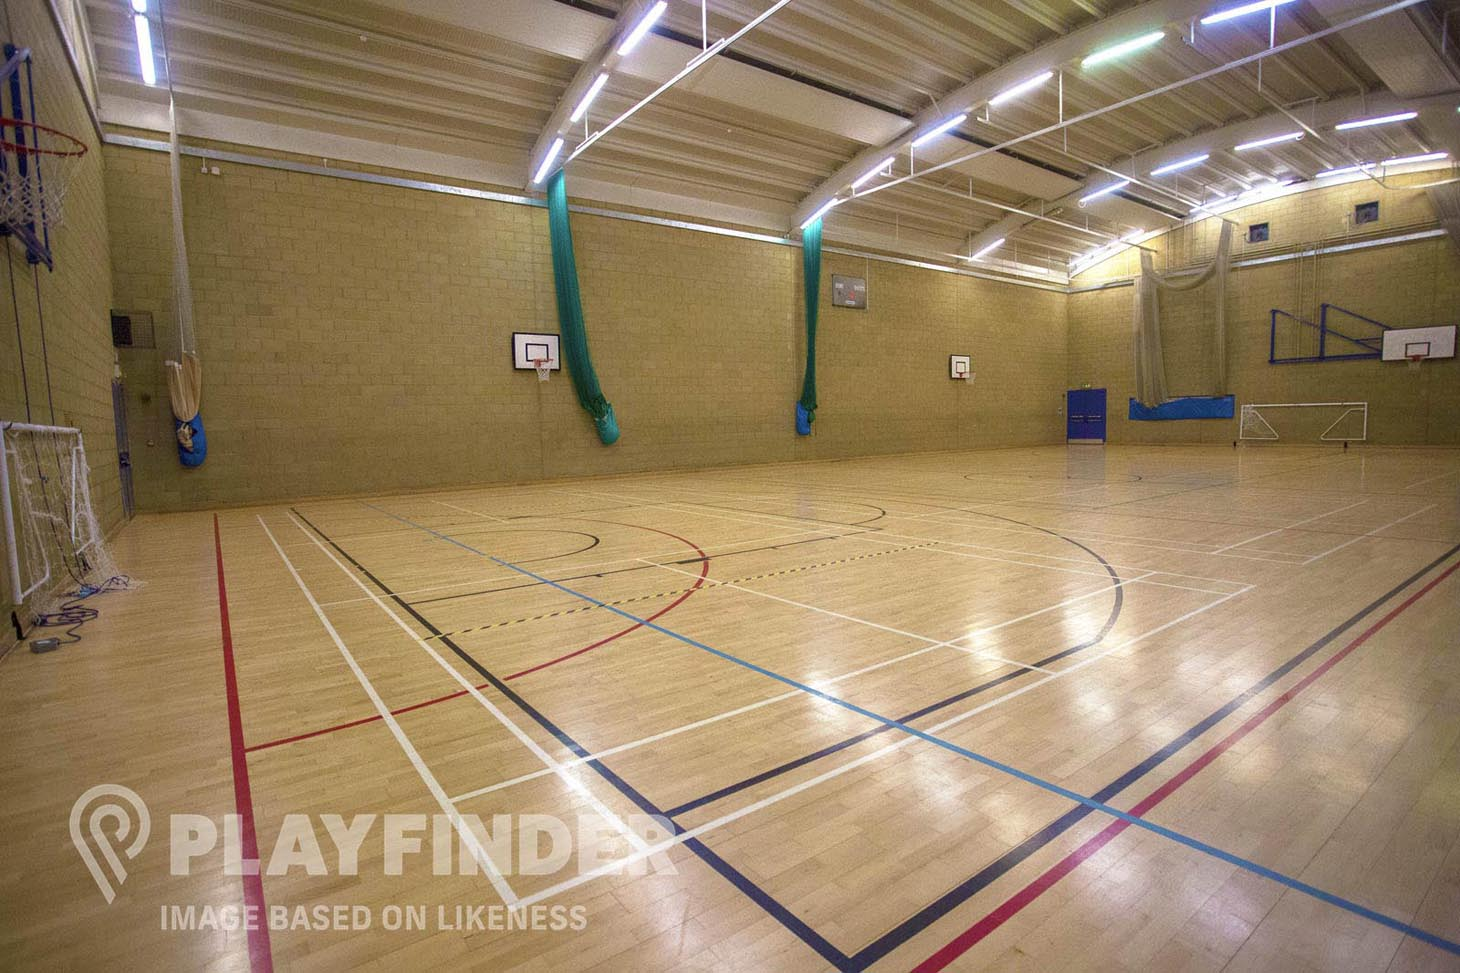 Moulsecoomb Community Leisure Centre Sports hall space hire